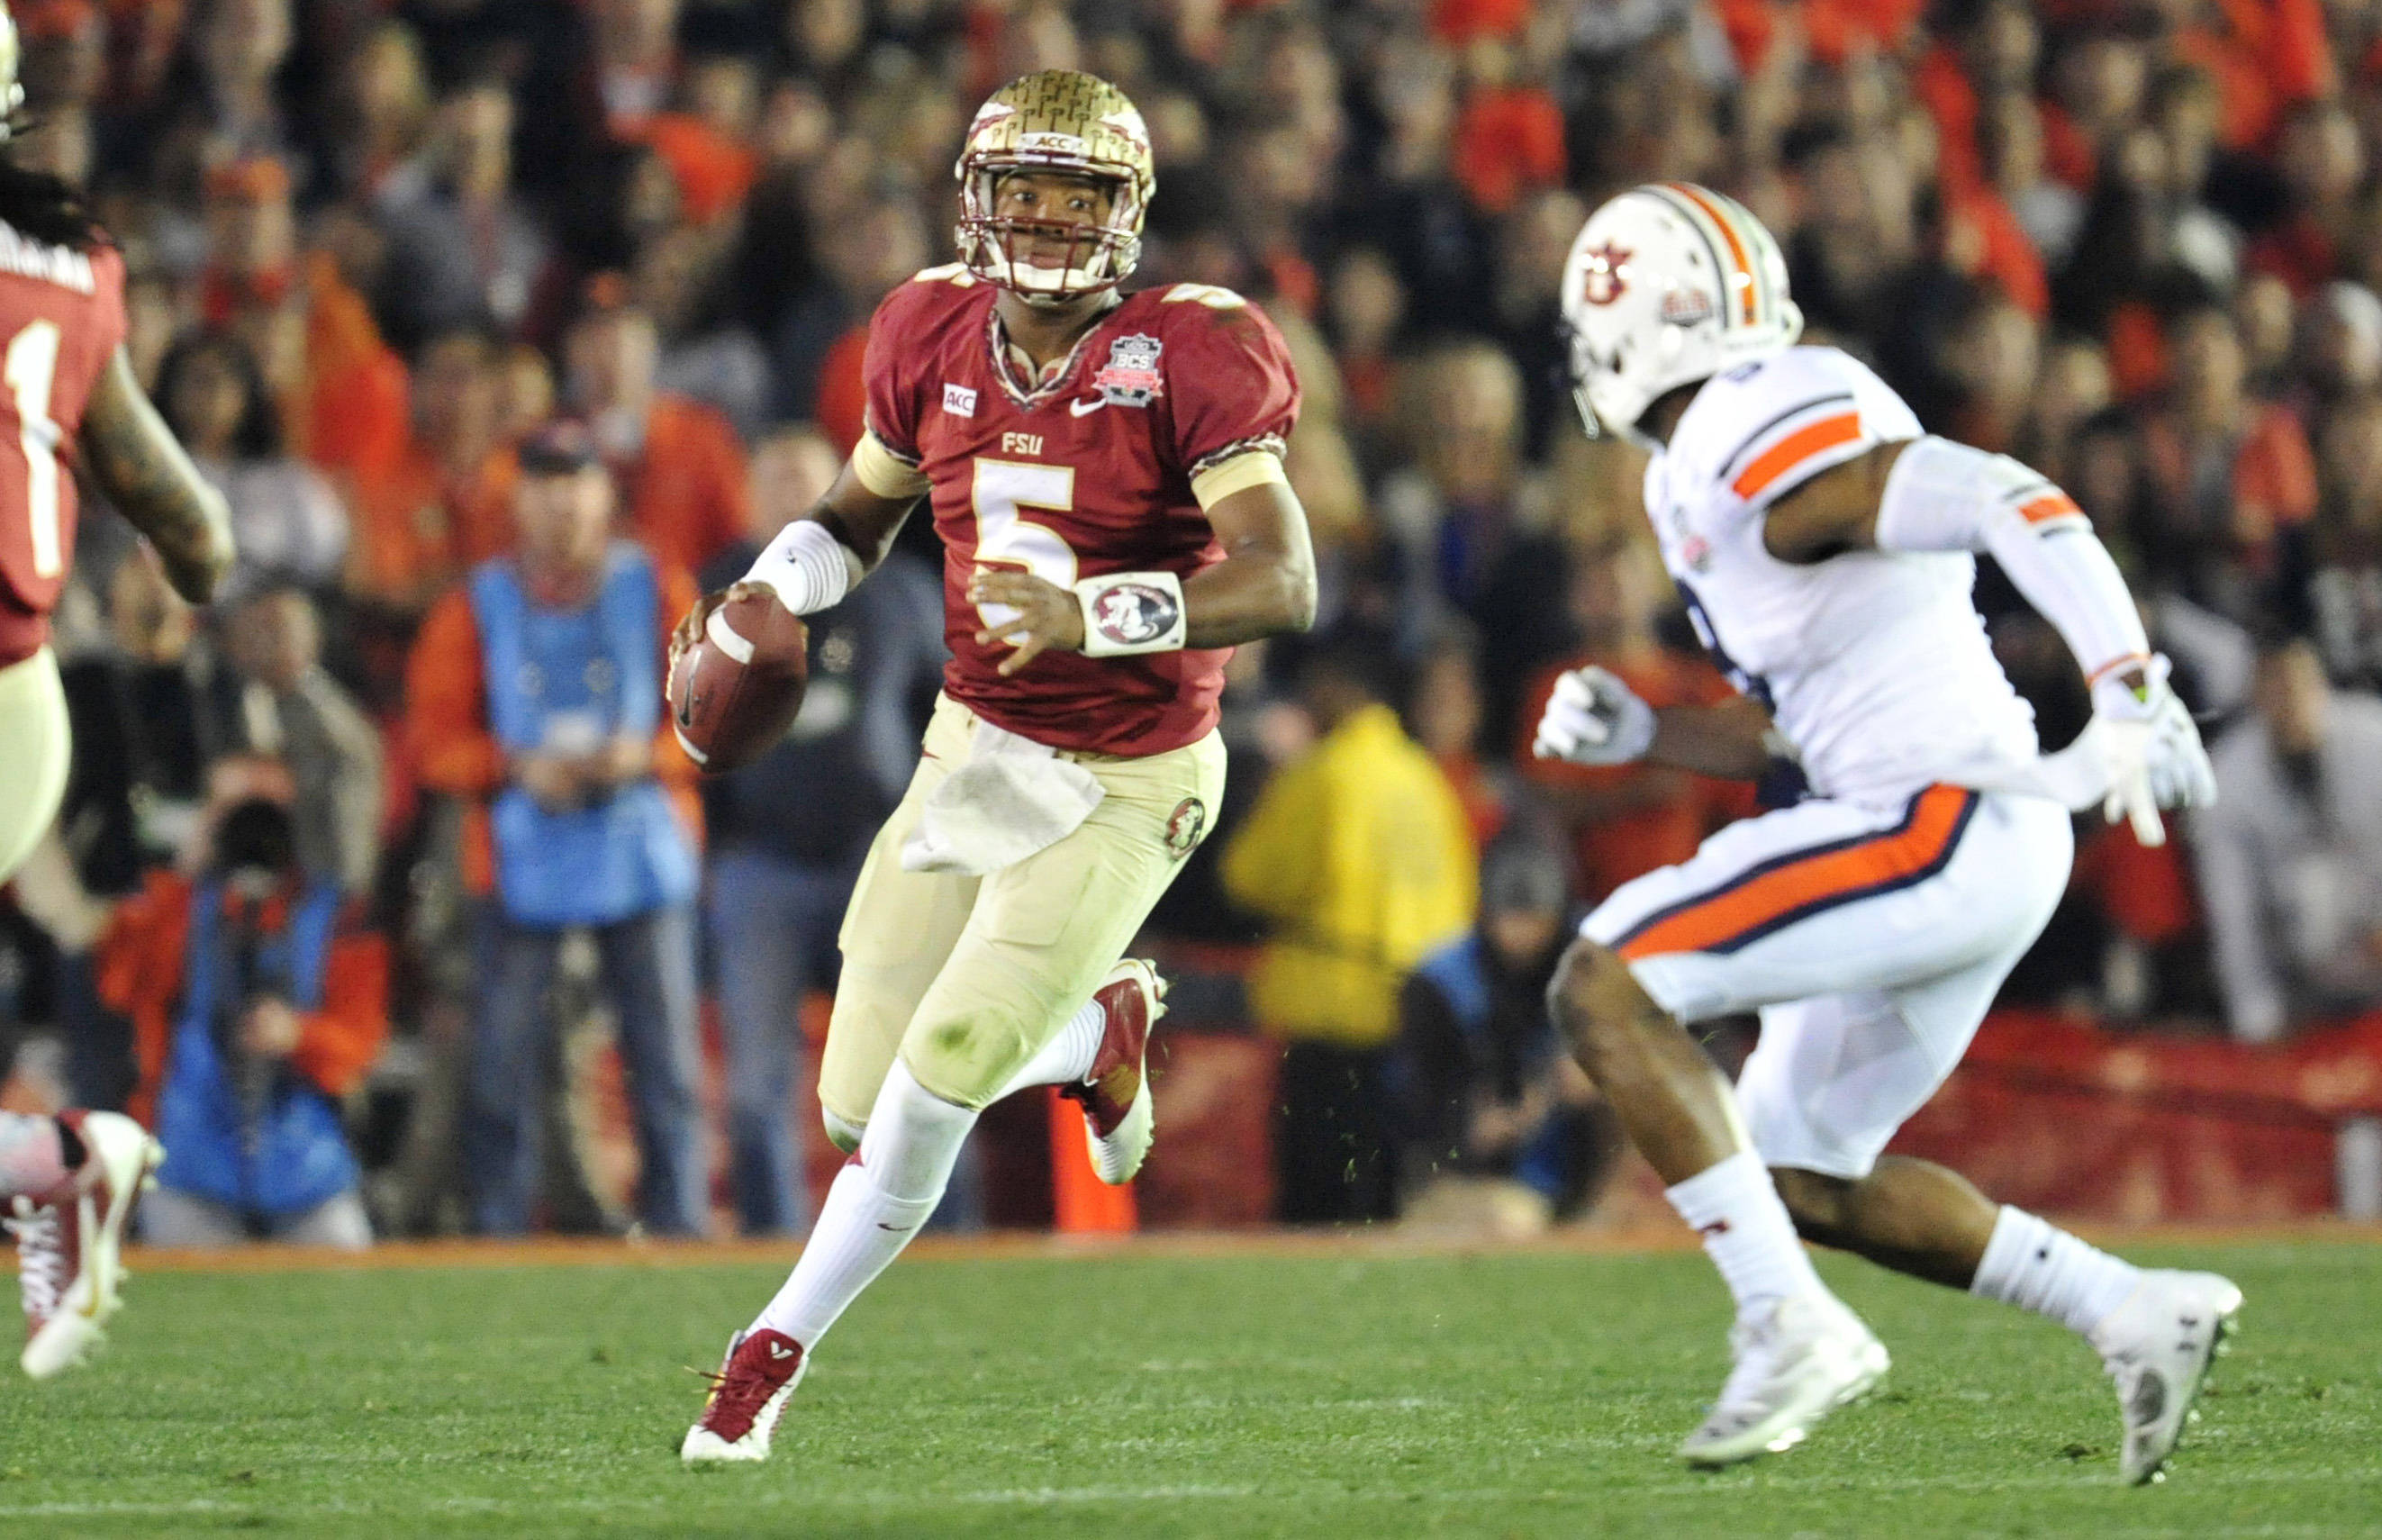 Jan 6, 2014; Pasadena, CA, USA; Florida State Seminoles quarterback Jameis Winston (5) looks to evade Auburn Tigers defense during the second half of the 2014 BCS National Championship game at the Rose Bowl.  Mandatory Credit: Gary A. Vasquez-USA TODAY Sports